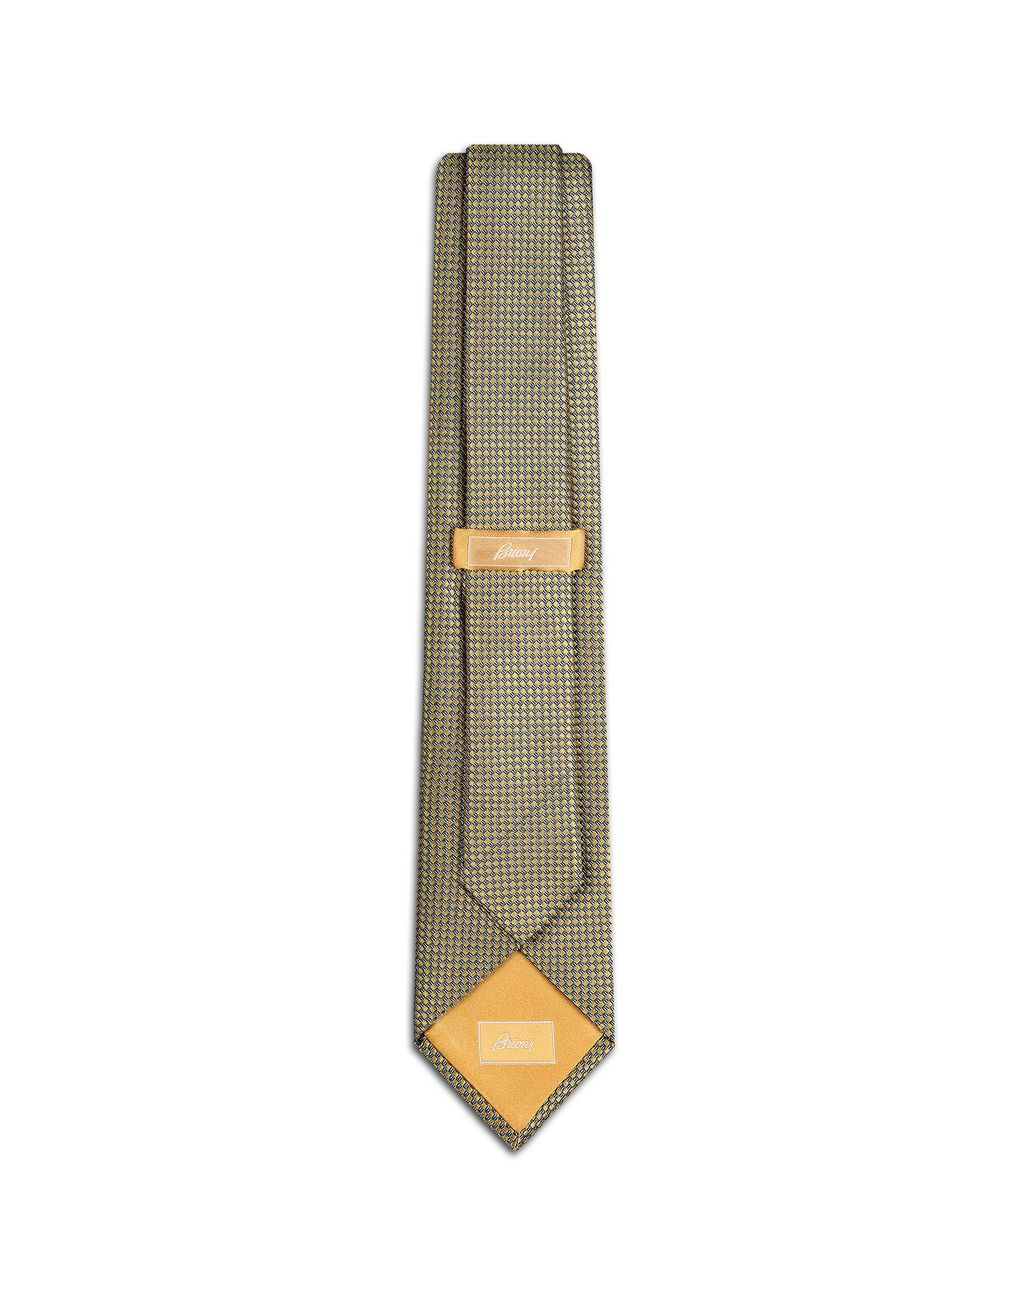 BRIONI Cravate à motif miniature jaune Cravate Homme r